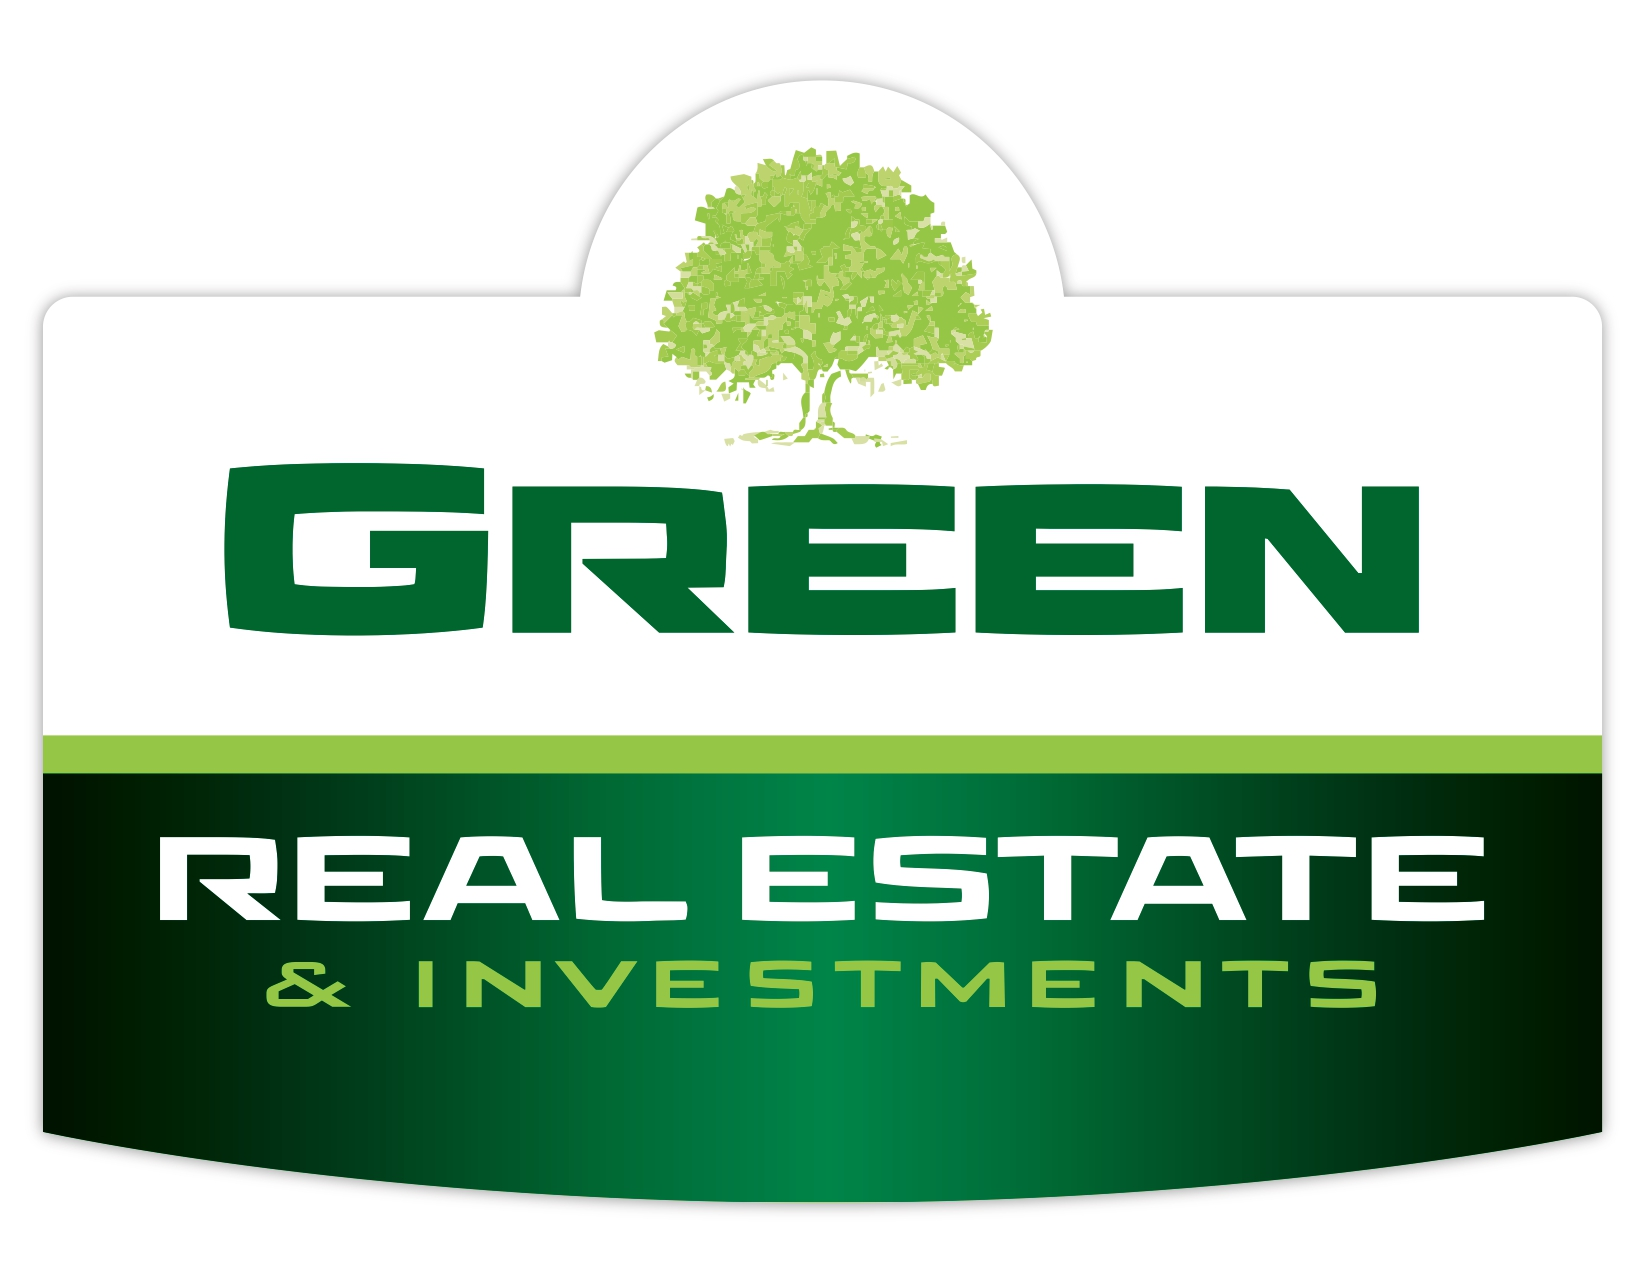 GREEN REAL ESTATE & INVESTMENTS, LLC